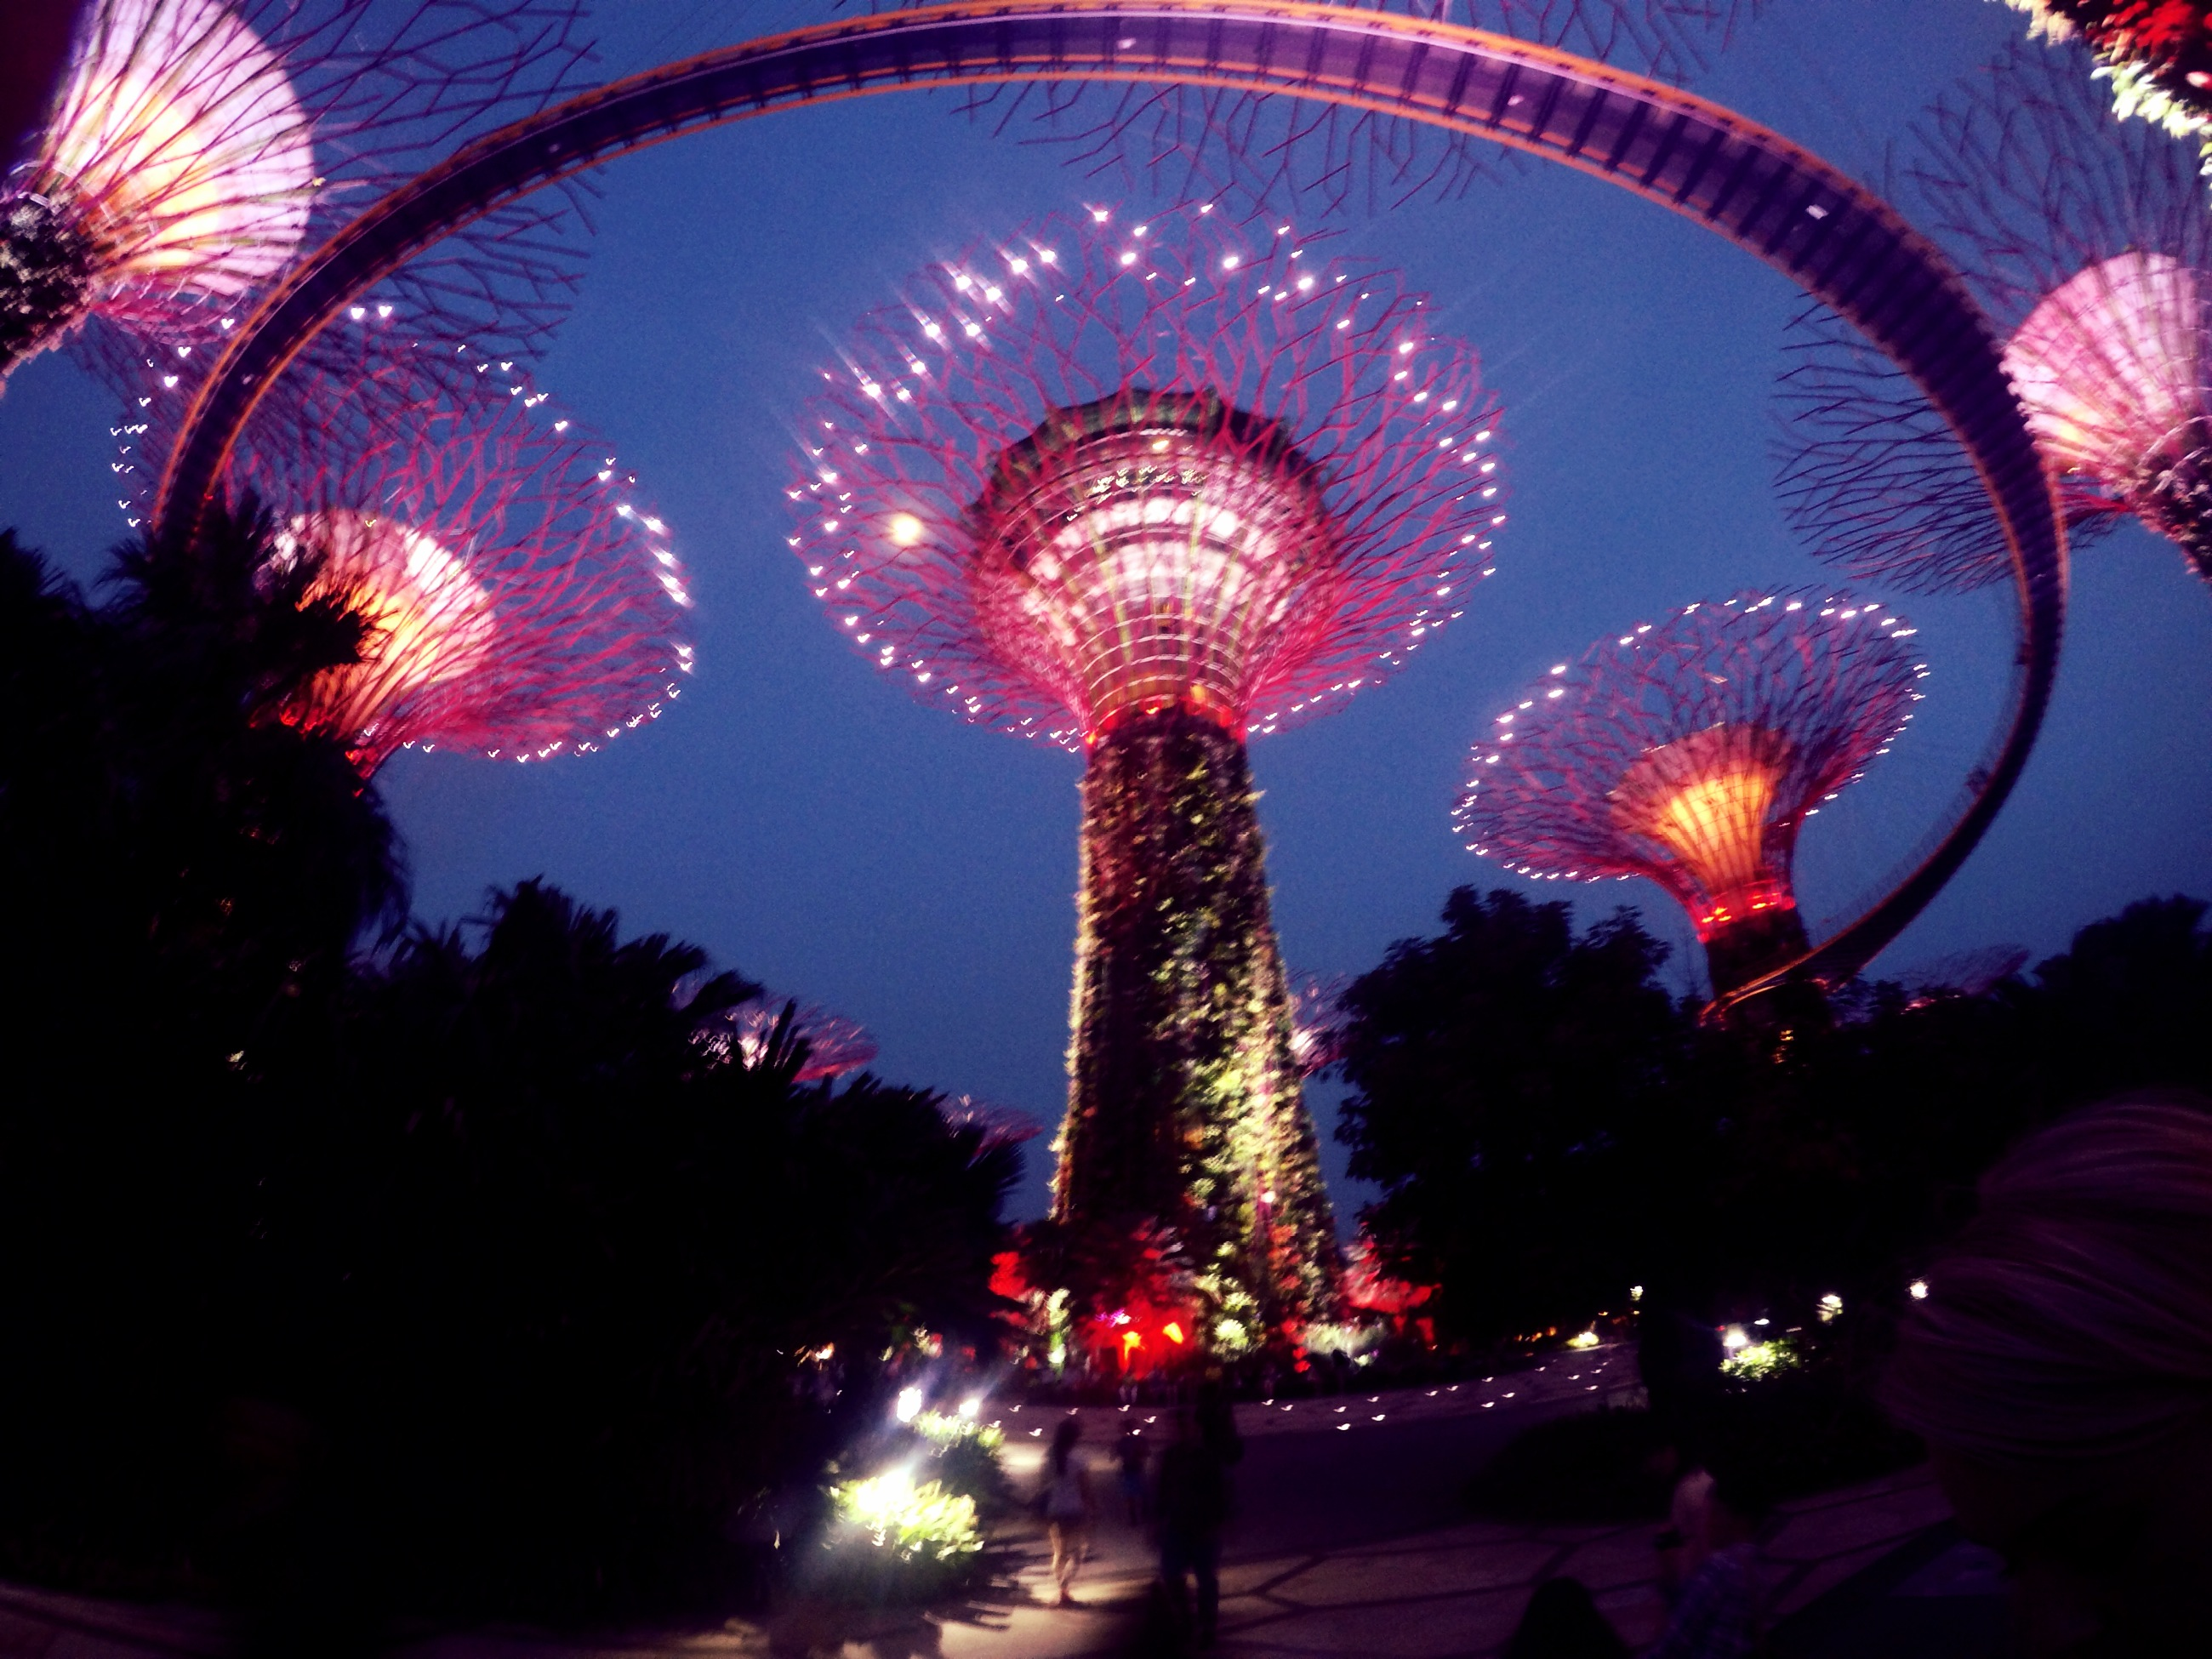 Garden By The Bay Eateries how to: see the light show at the gardensthe bay from every